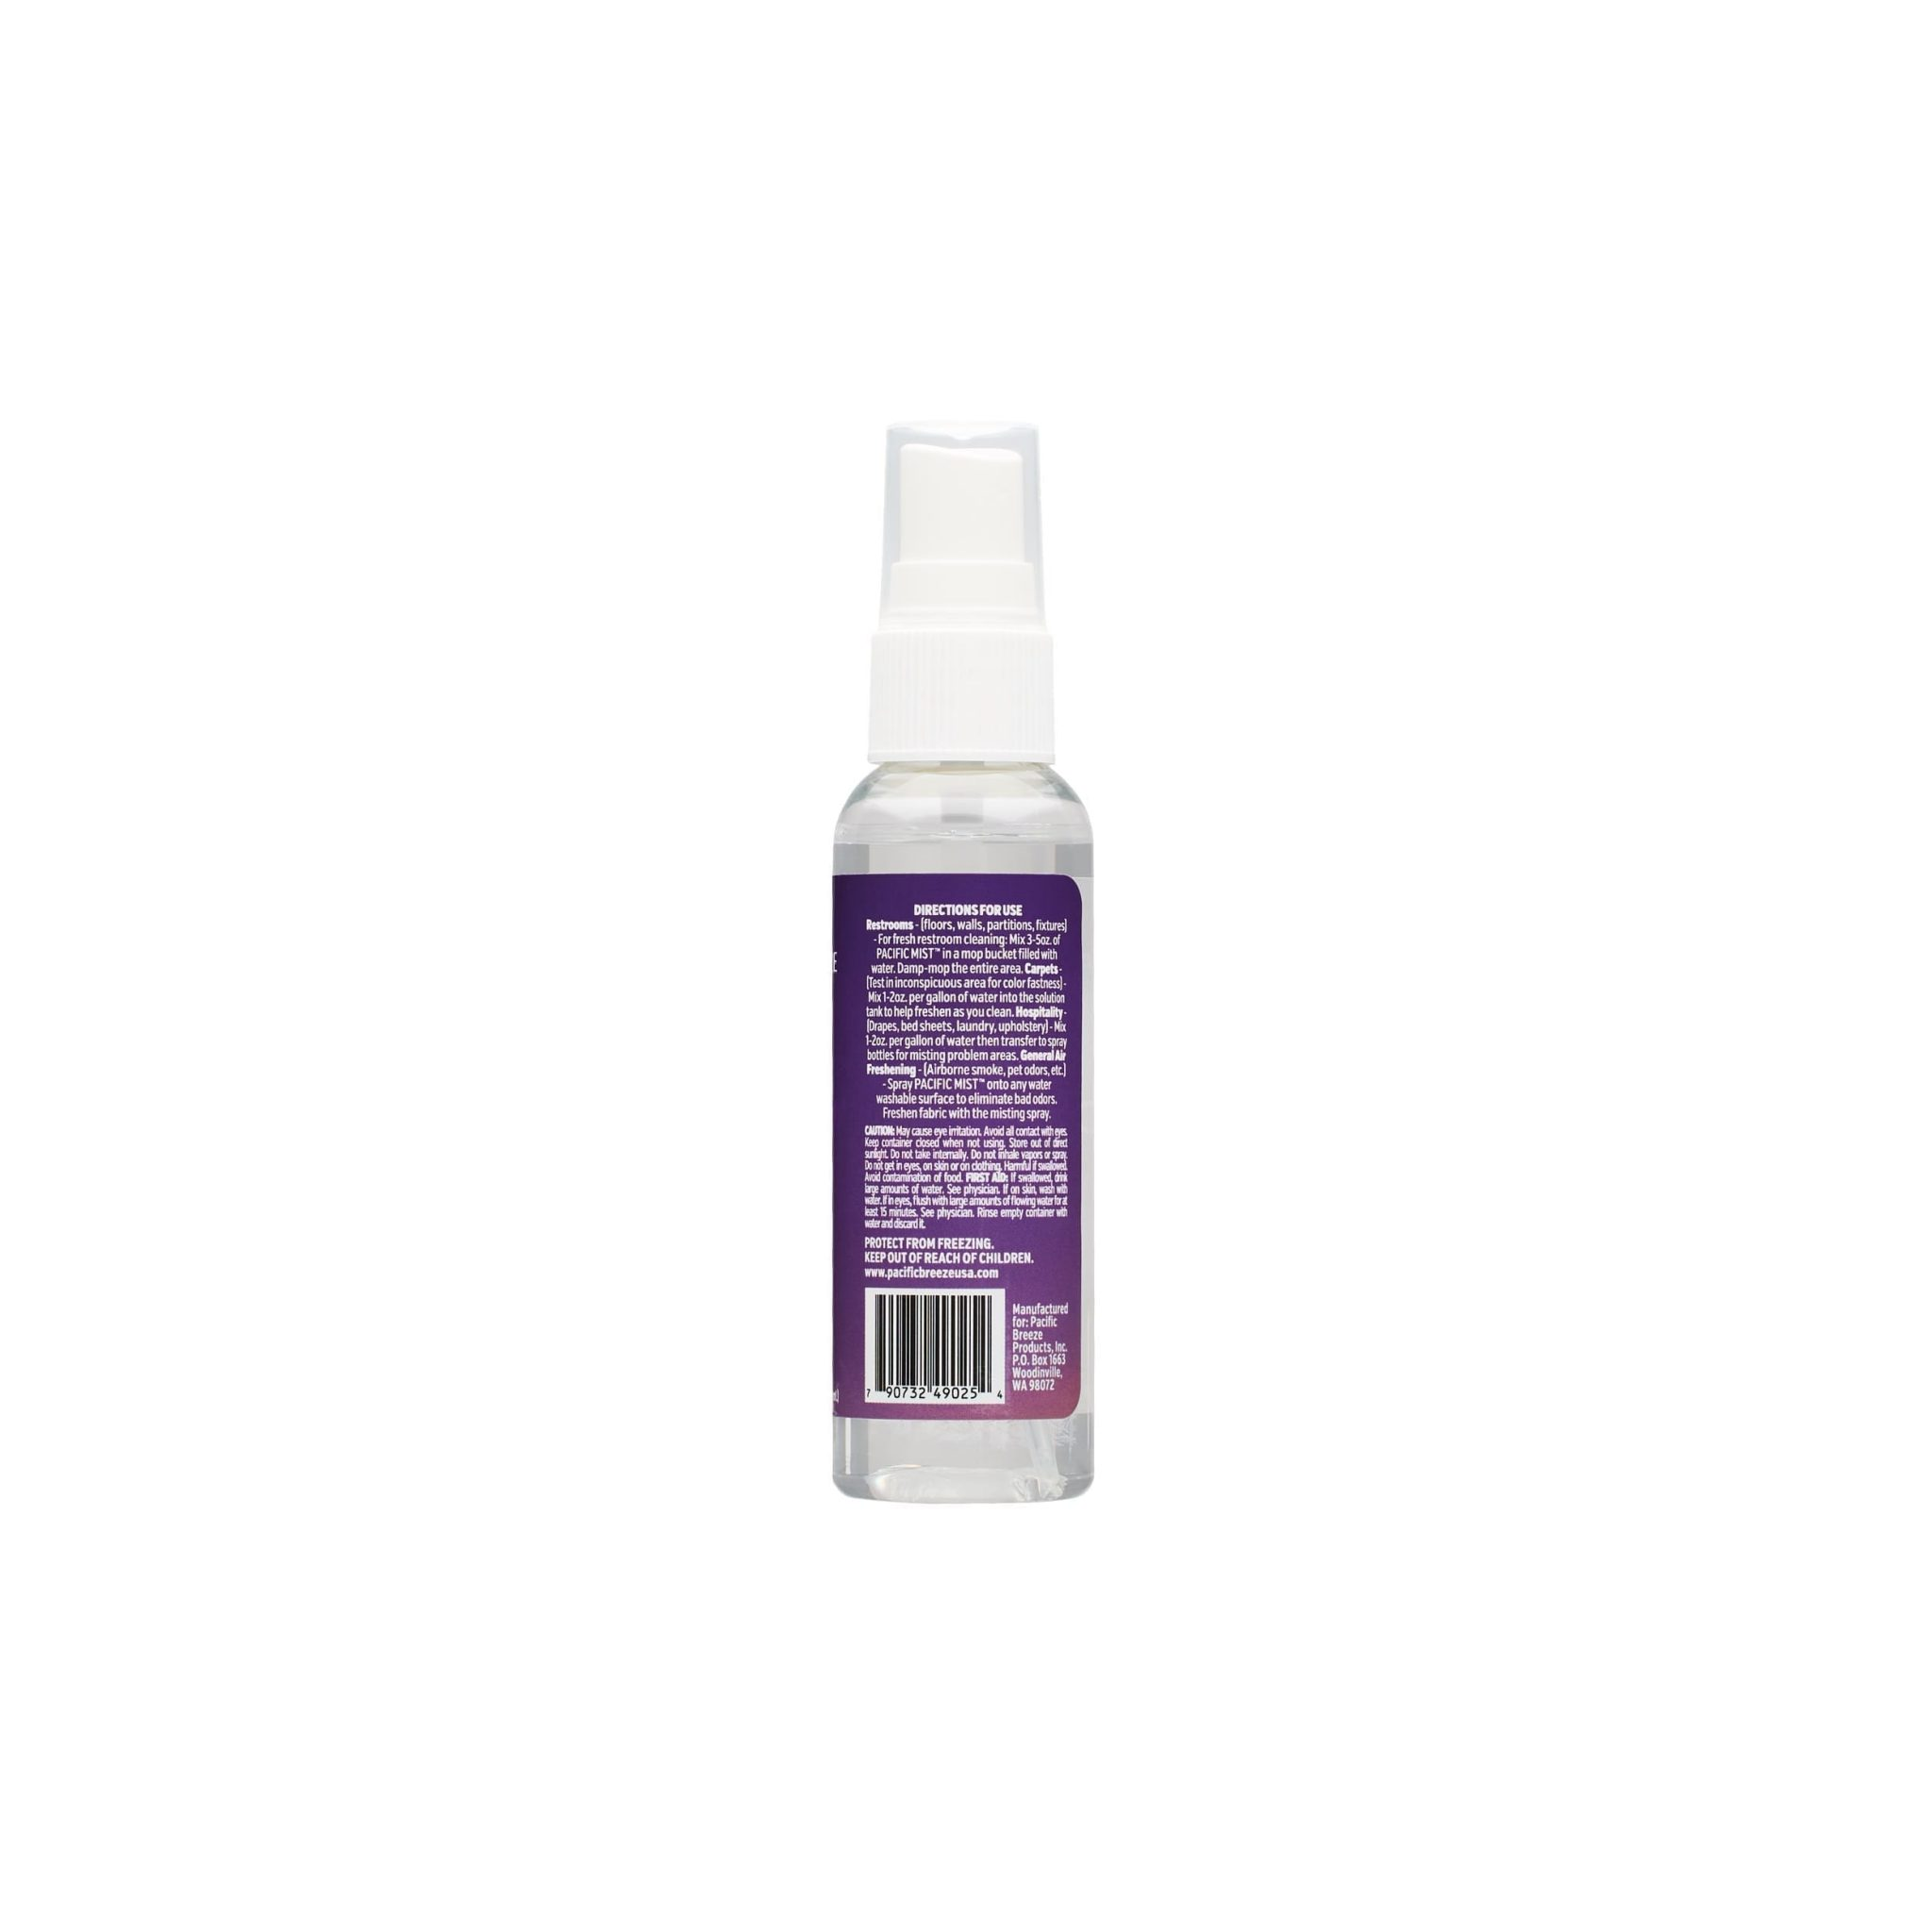 Pacific Mist™ Clean Breeze Room & Fabric Refresher 2oz